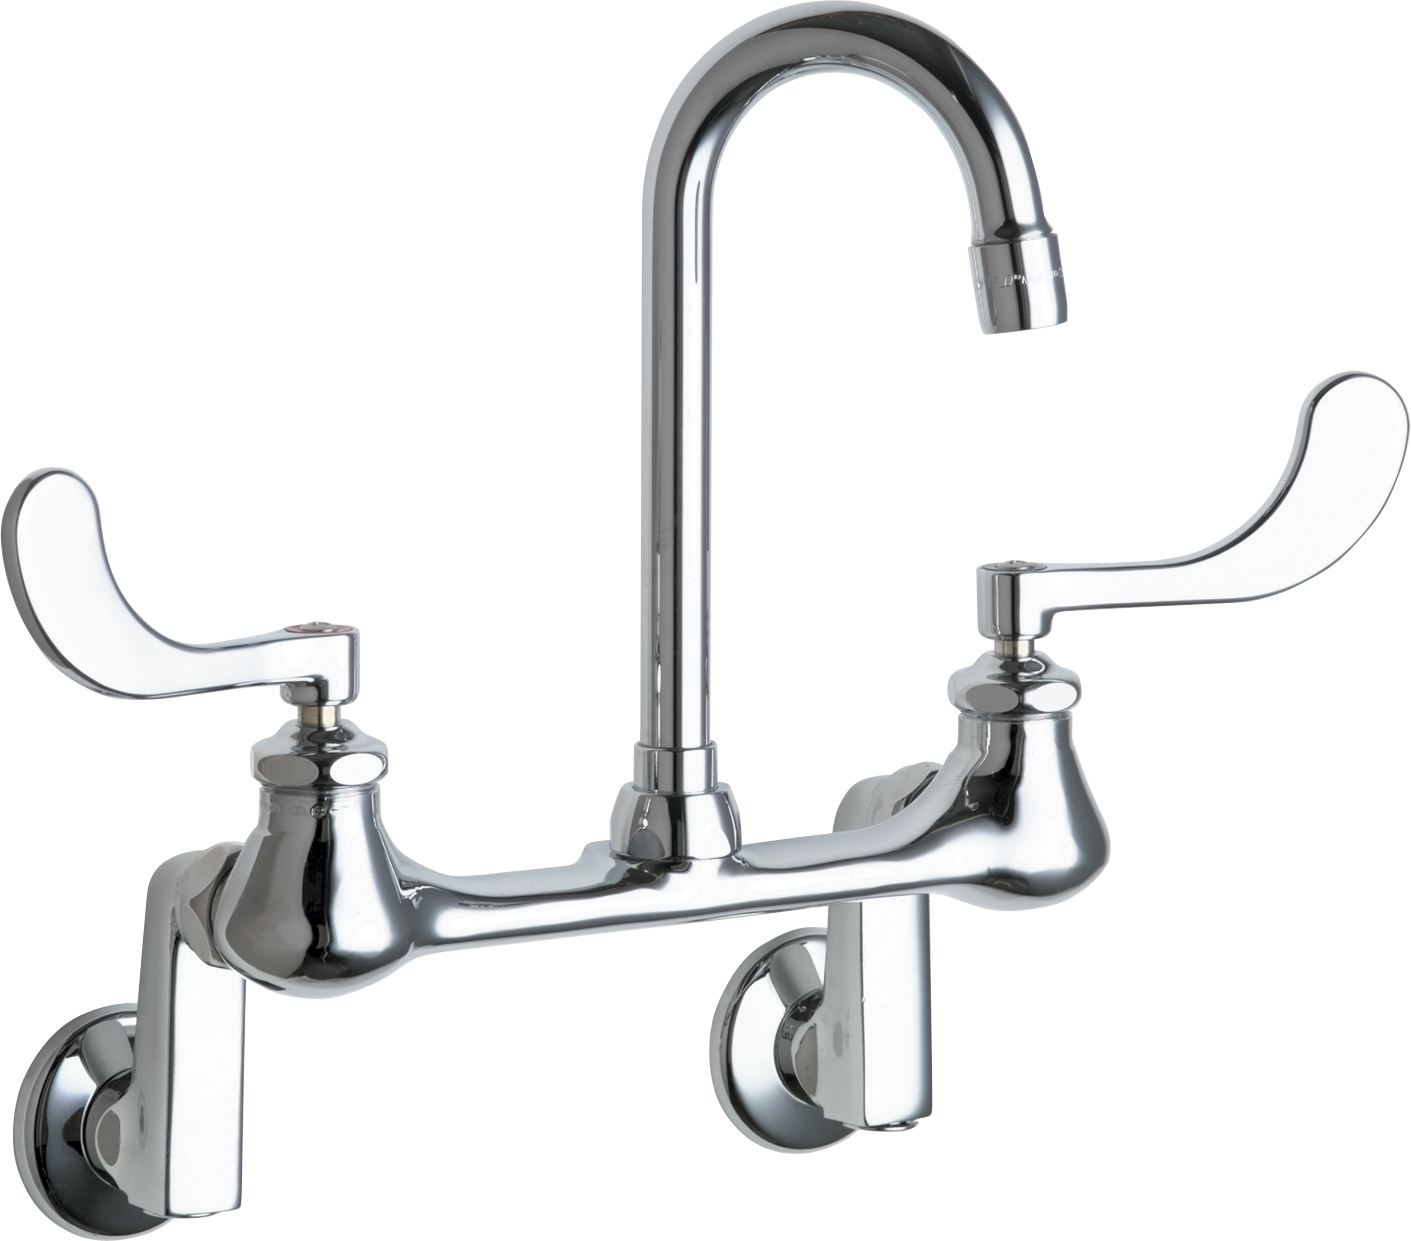 Wall Mounted Manual Sink Faucet With Adjustable Centers